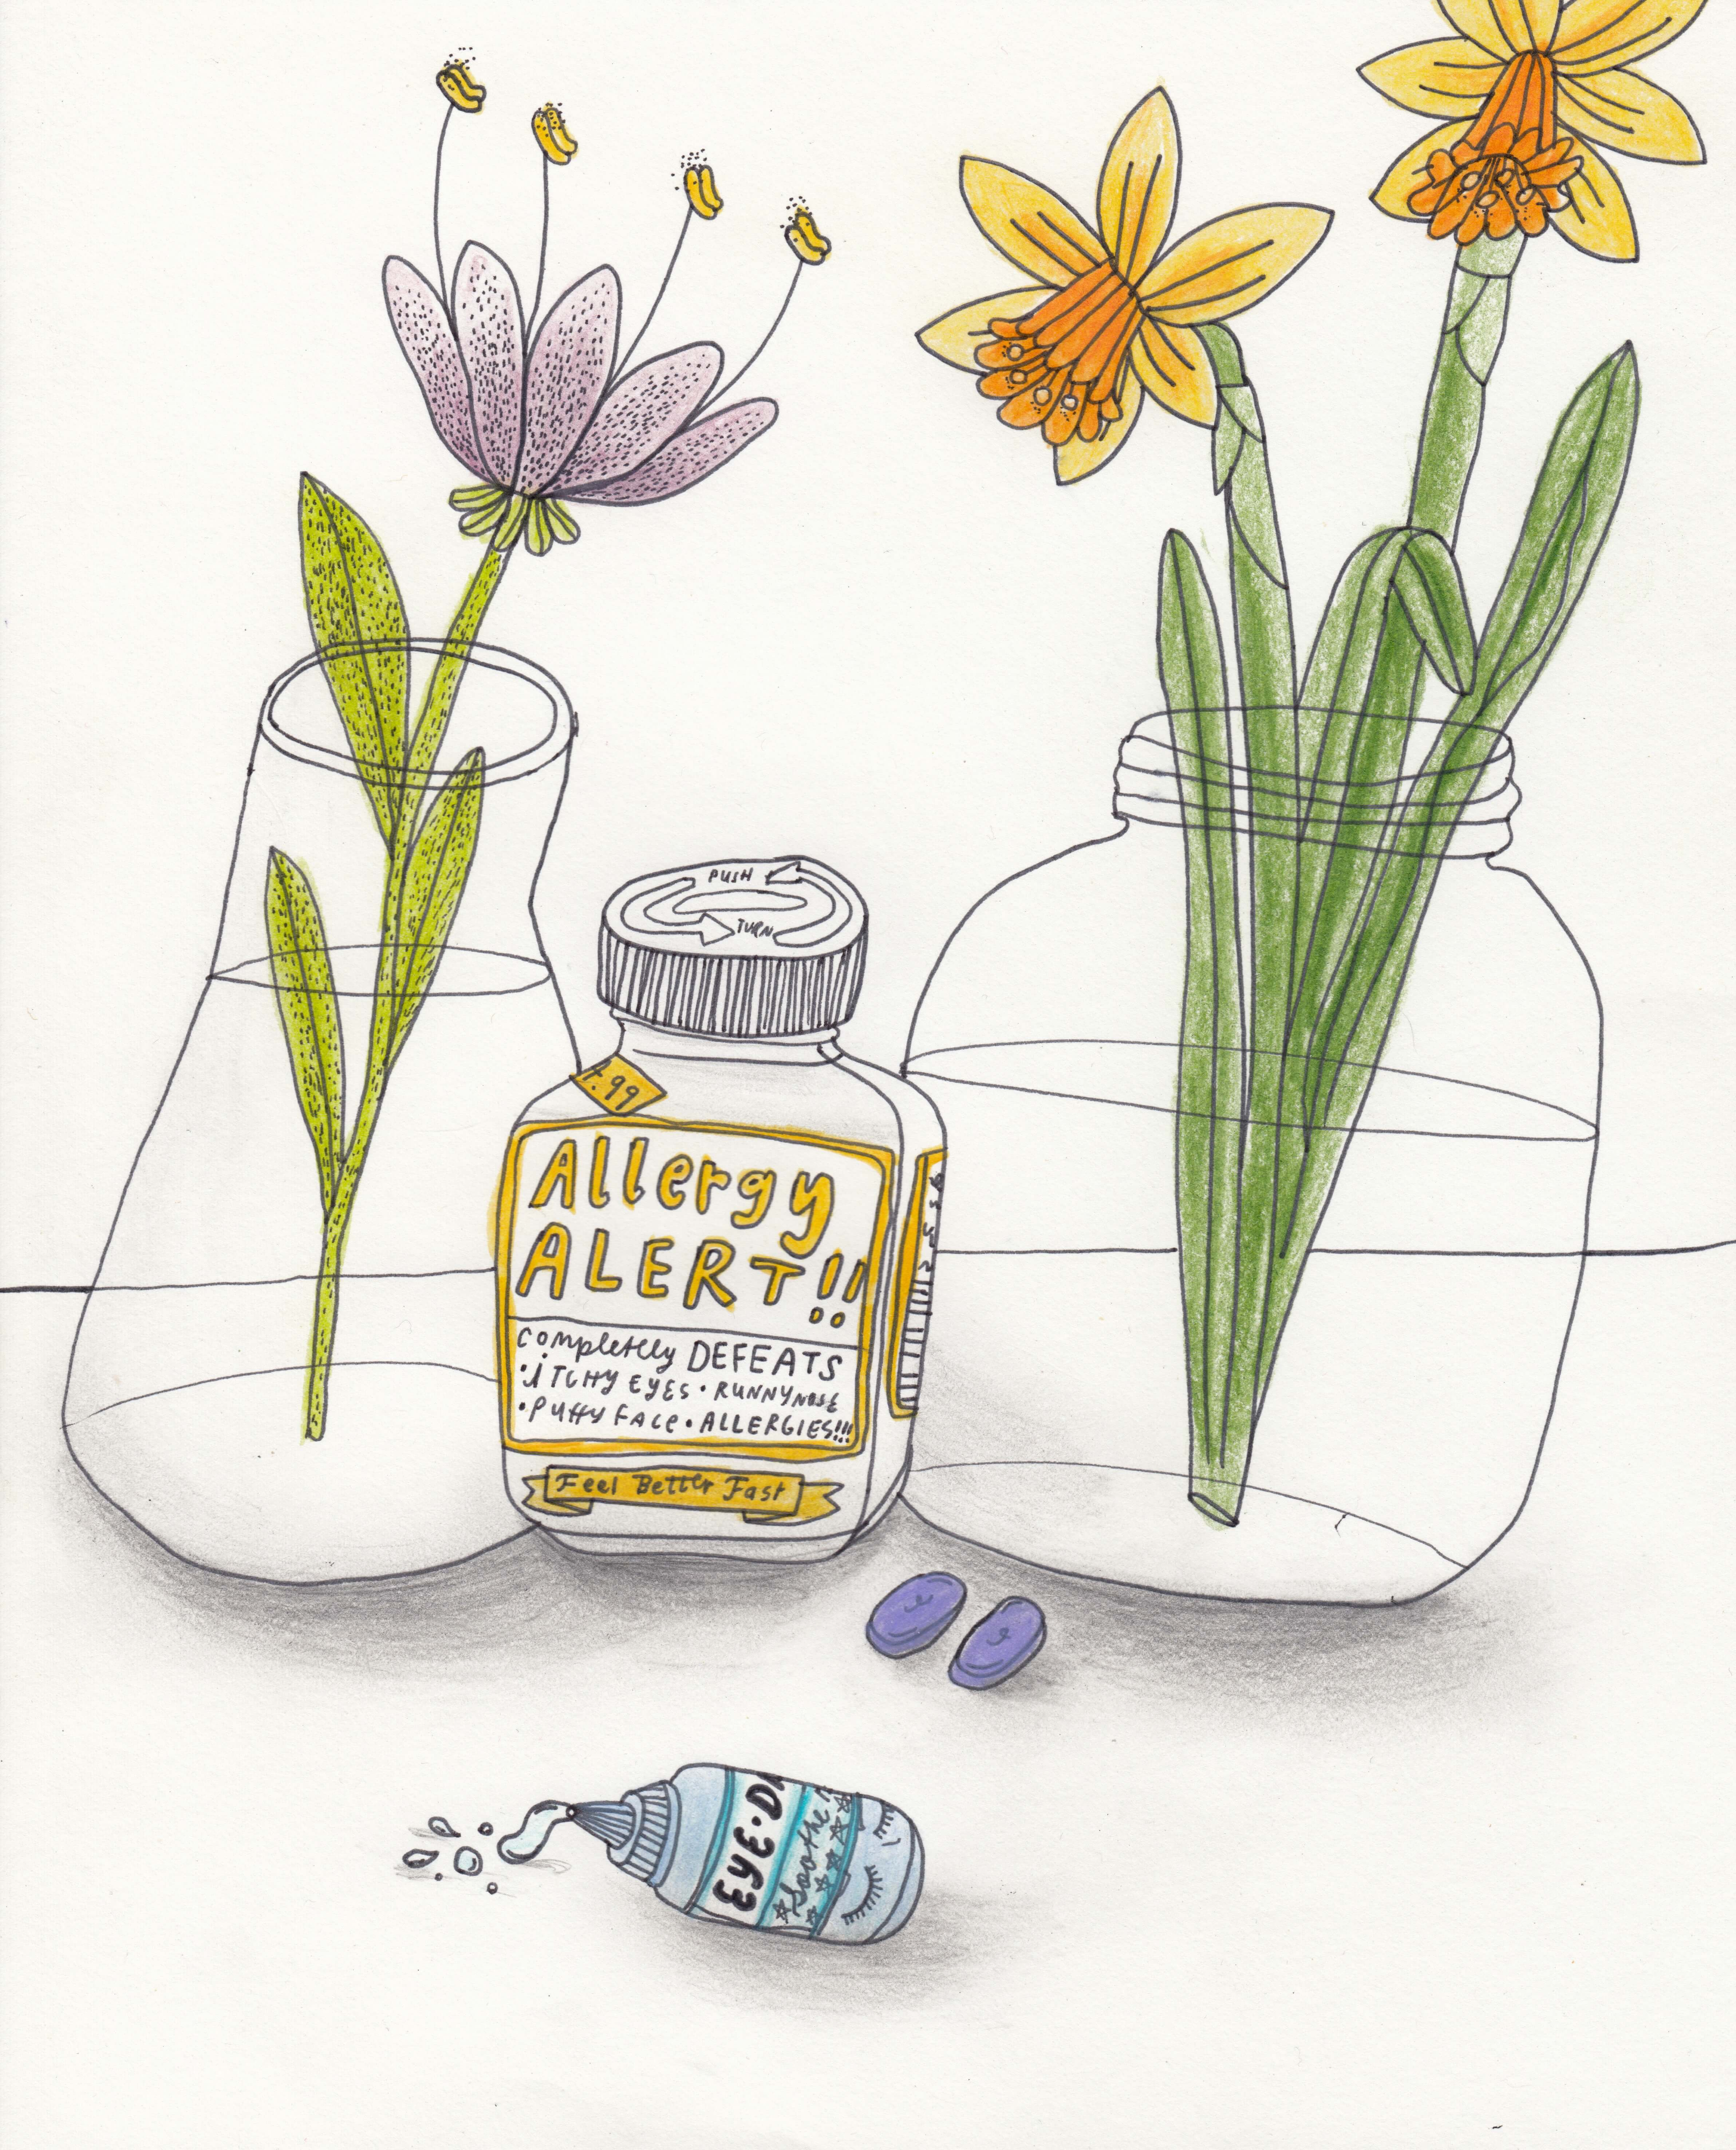 I'm trying to enjoy spring, but seasonal allergies are making it hard. —Lucia